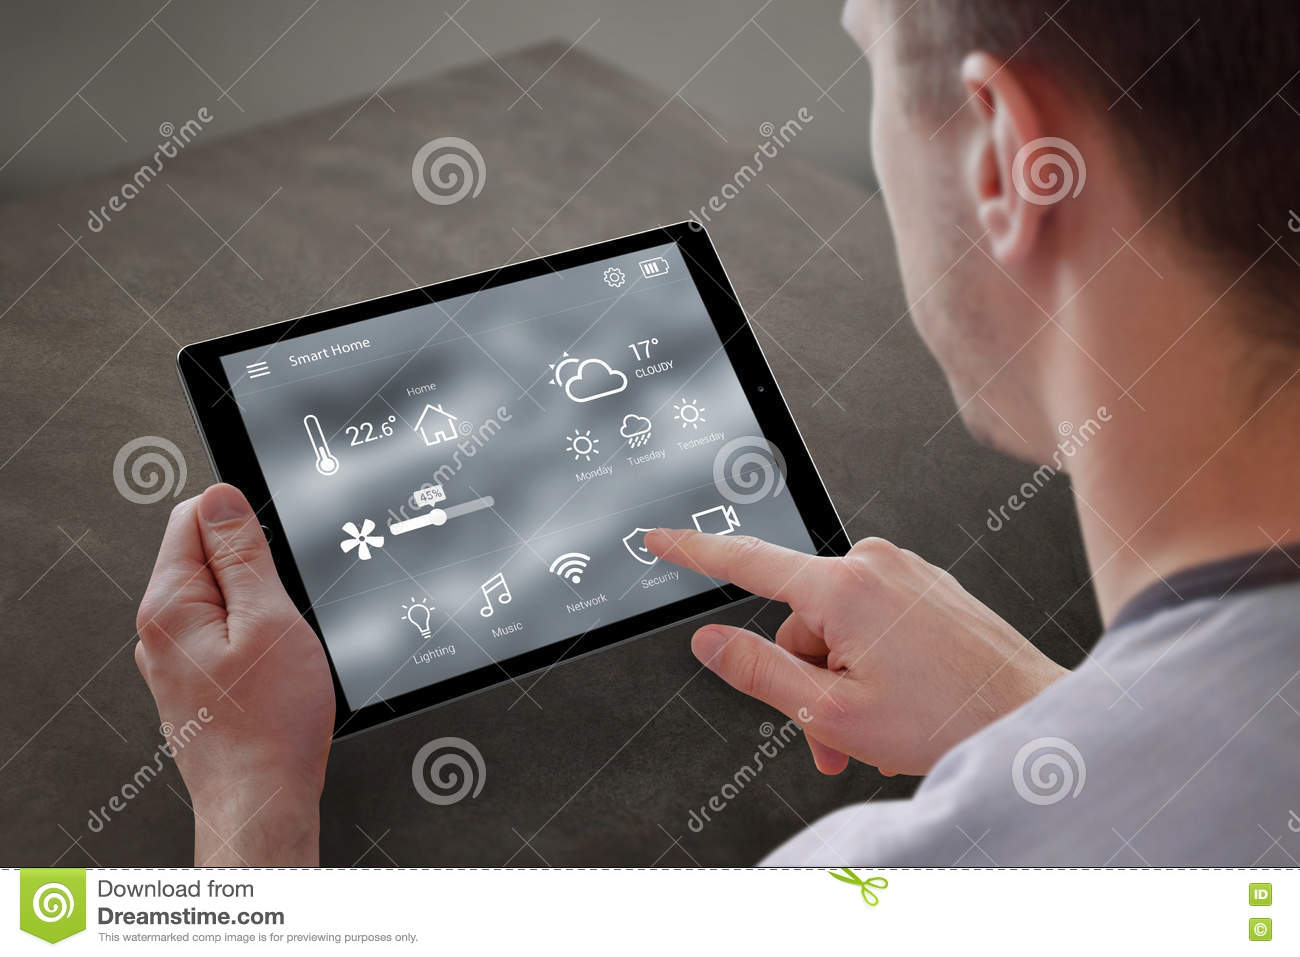 Man use application for smart home control on tablet